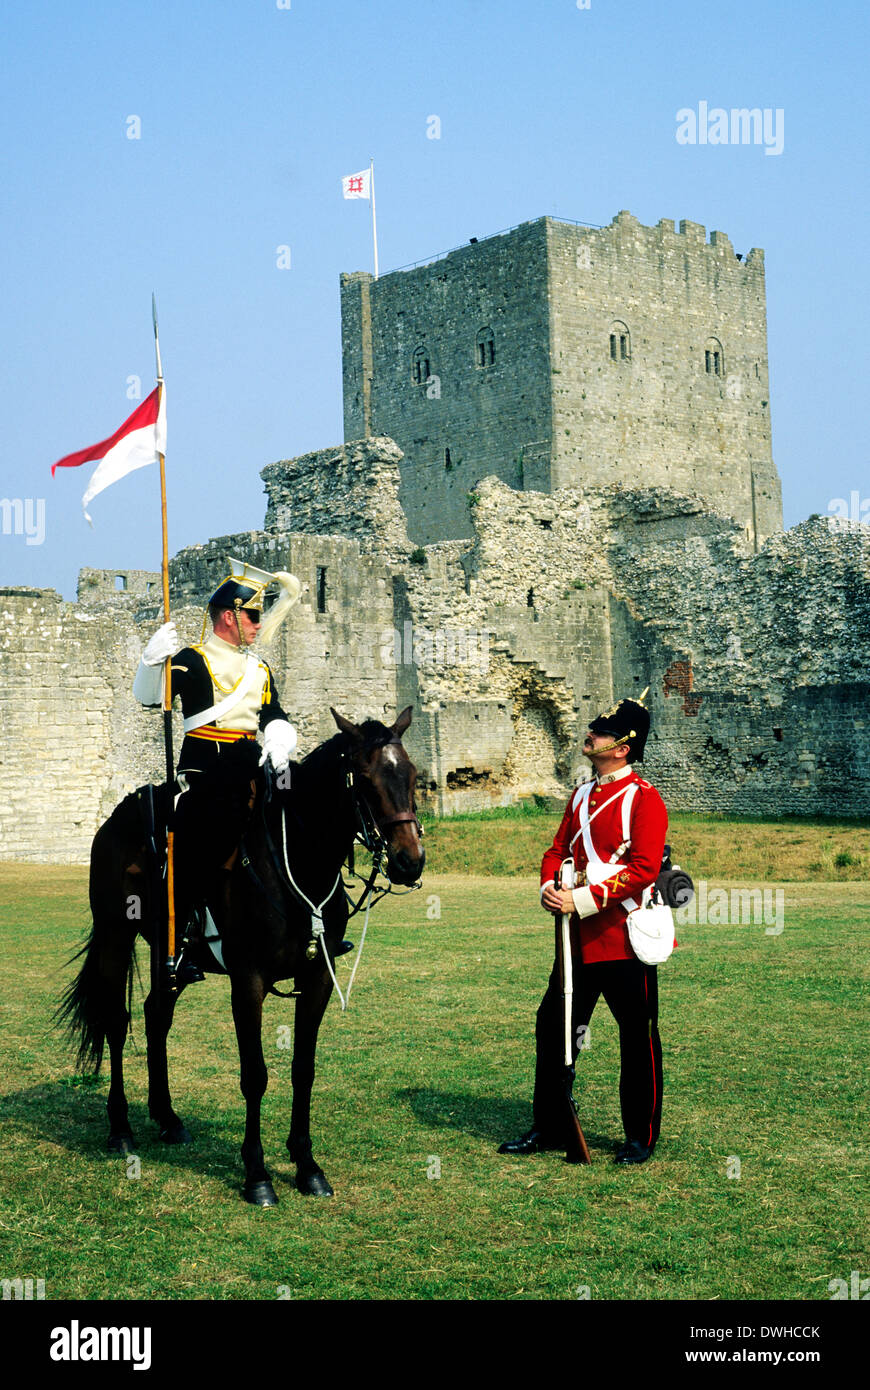 Portchester Castle, Hampshire, late 19th century British military, 17th Lancers and 57th Middlesex Regiment, historical re-enactment soldier soldiers cavalry cavalryman England UK - Stock Image